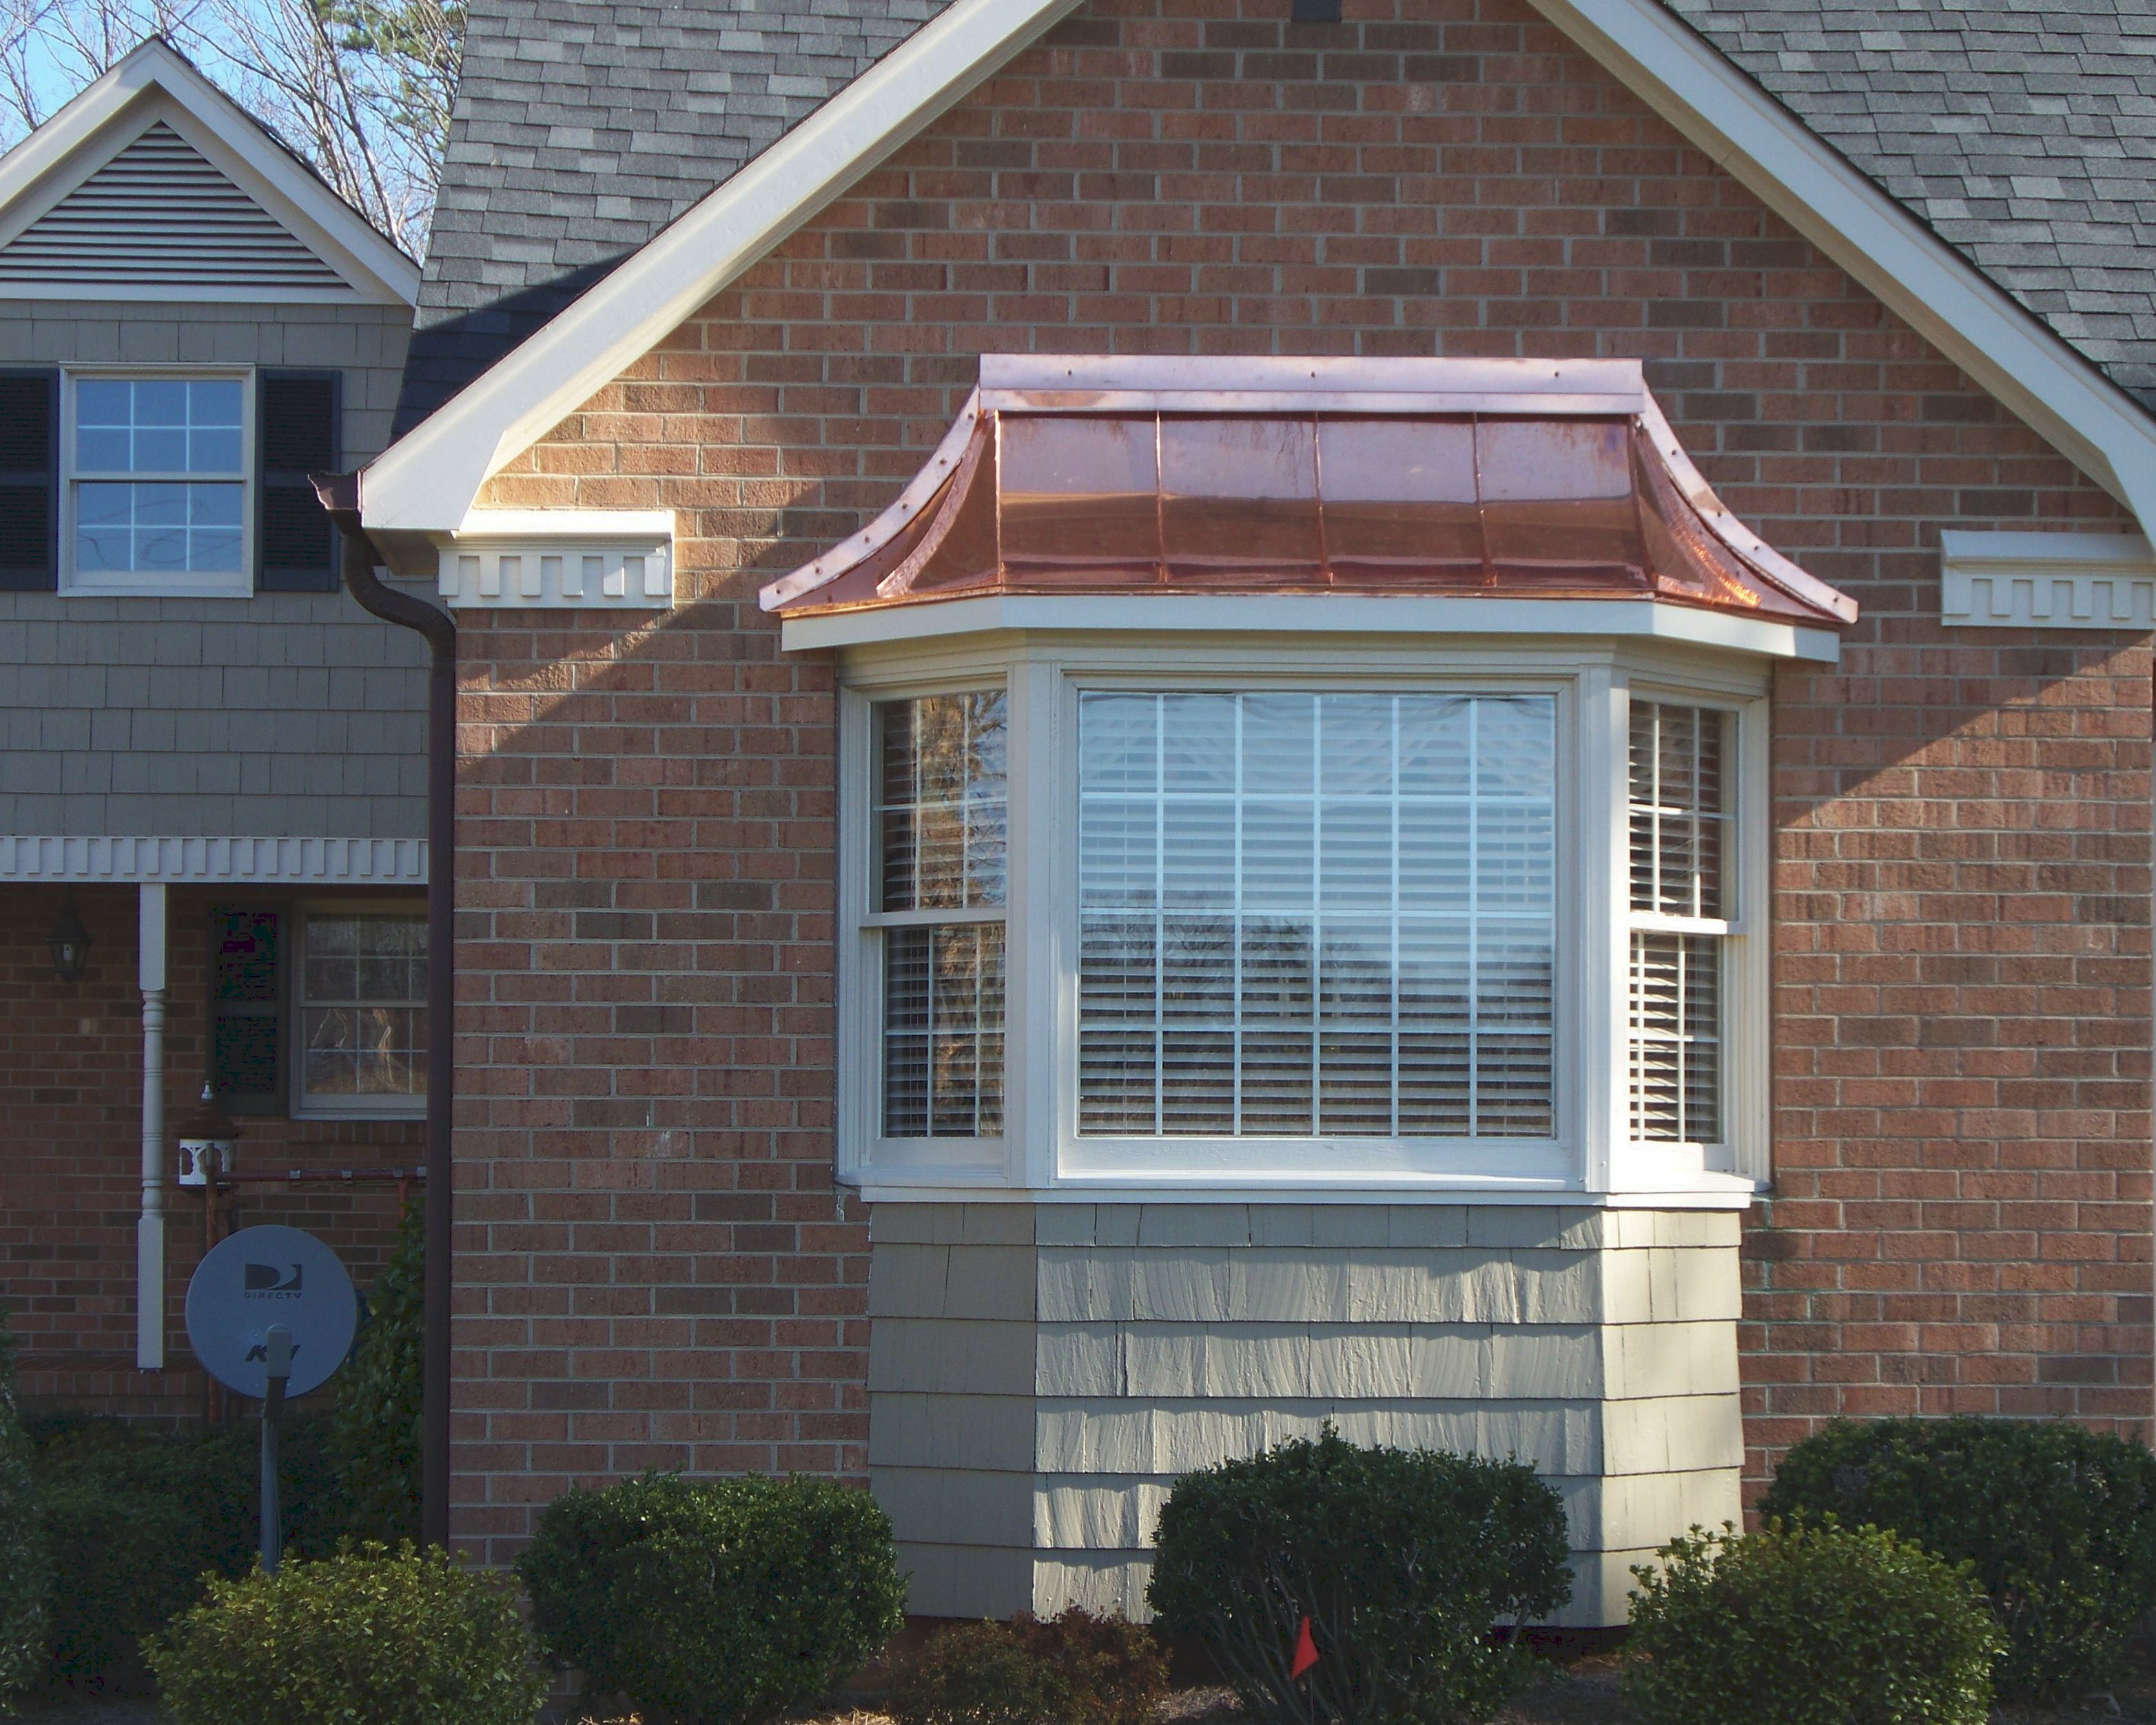 Copper Roofing Pics Copper Roof Roofing Architecture Design